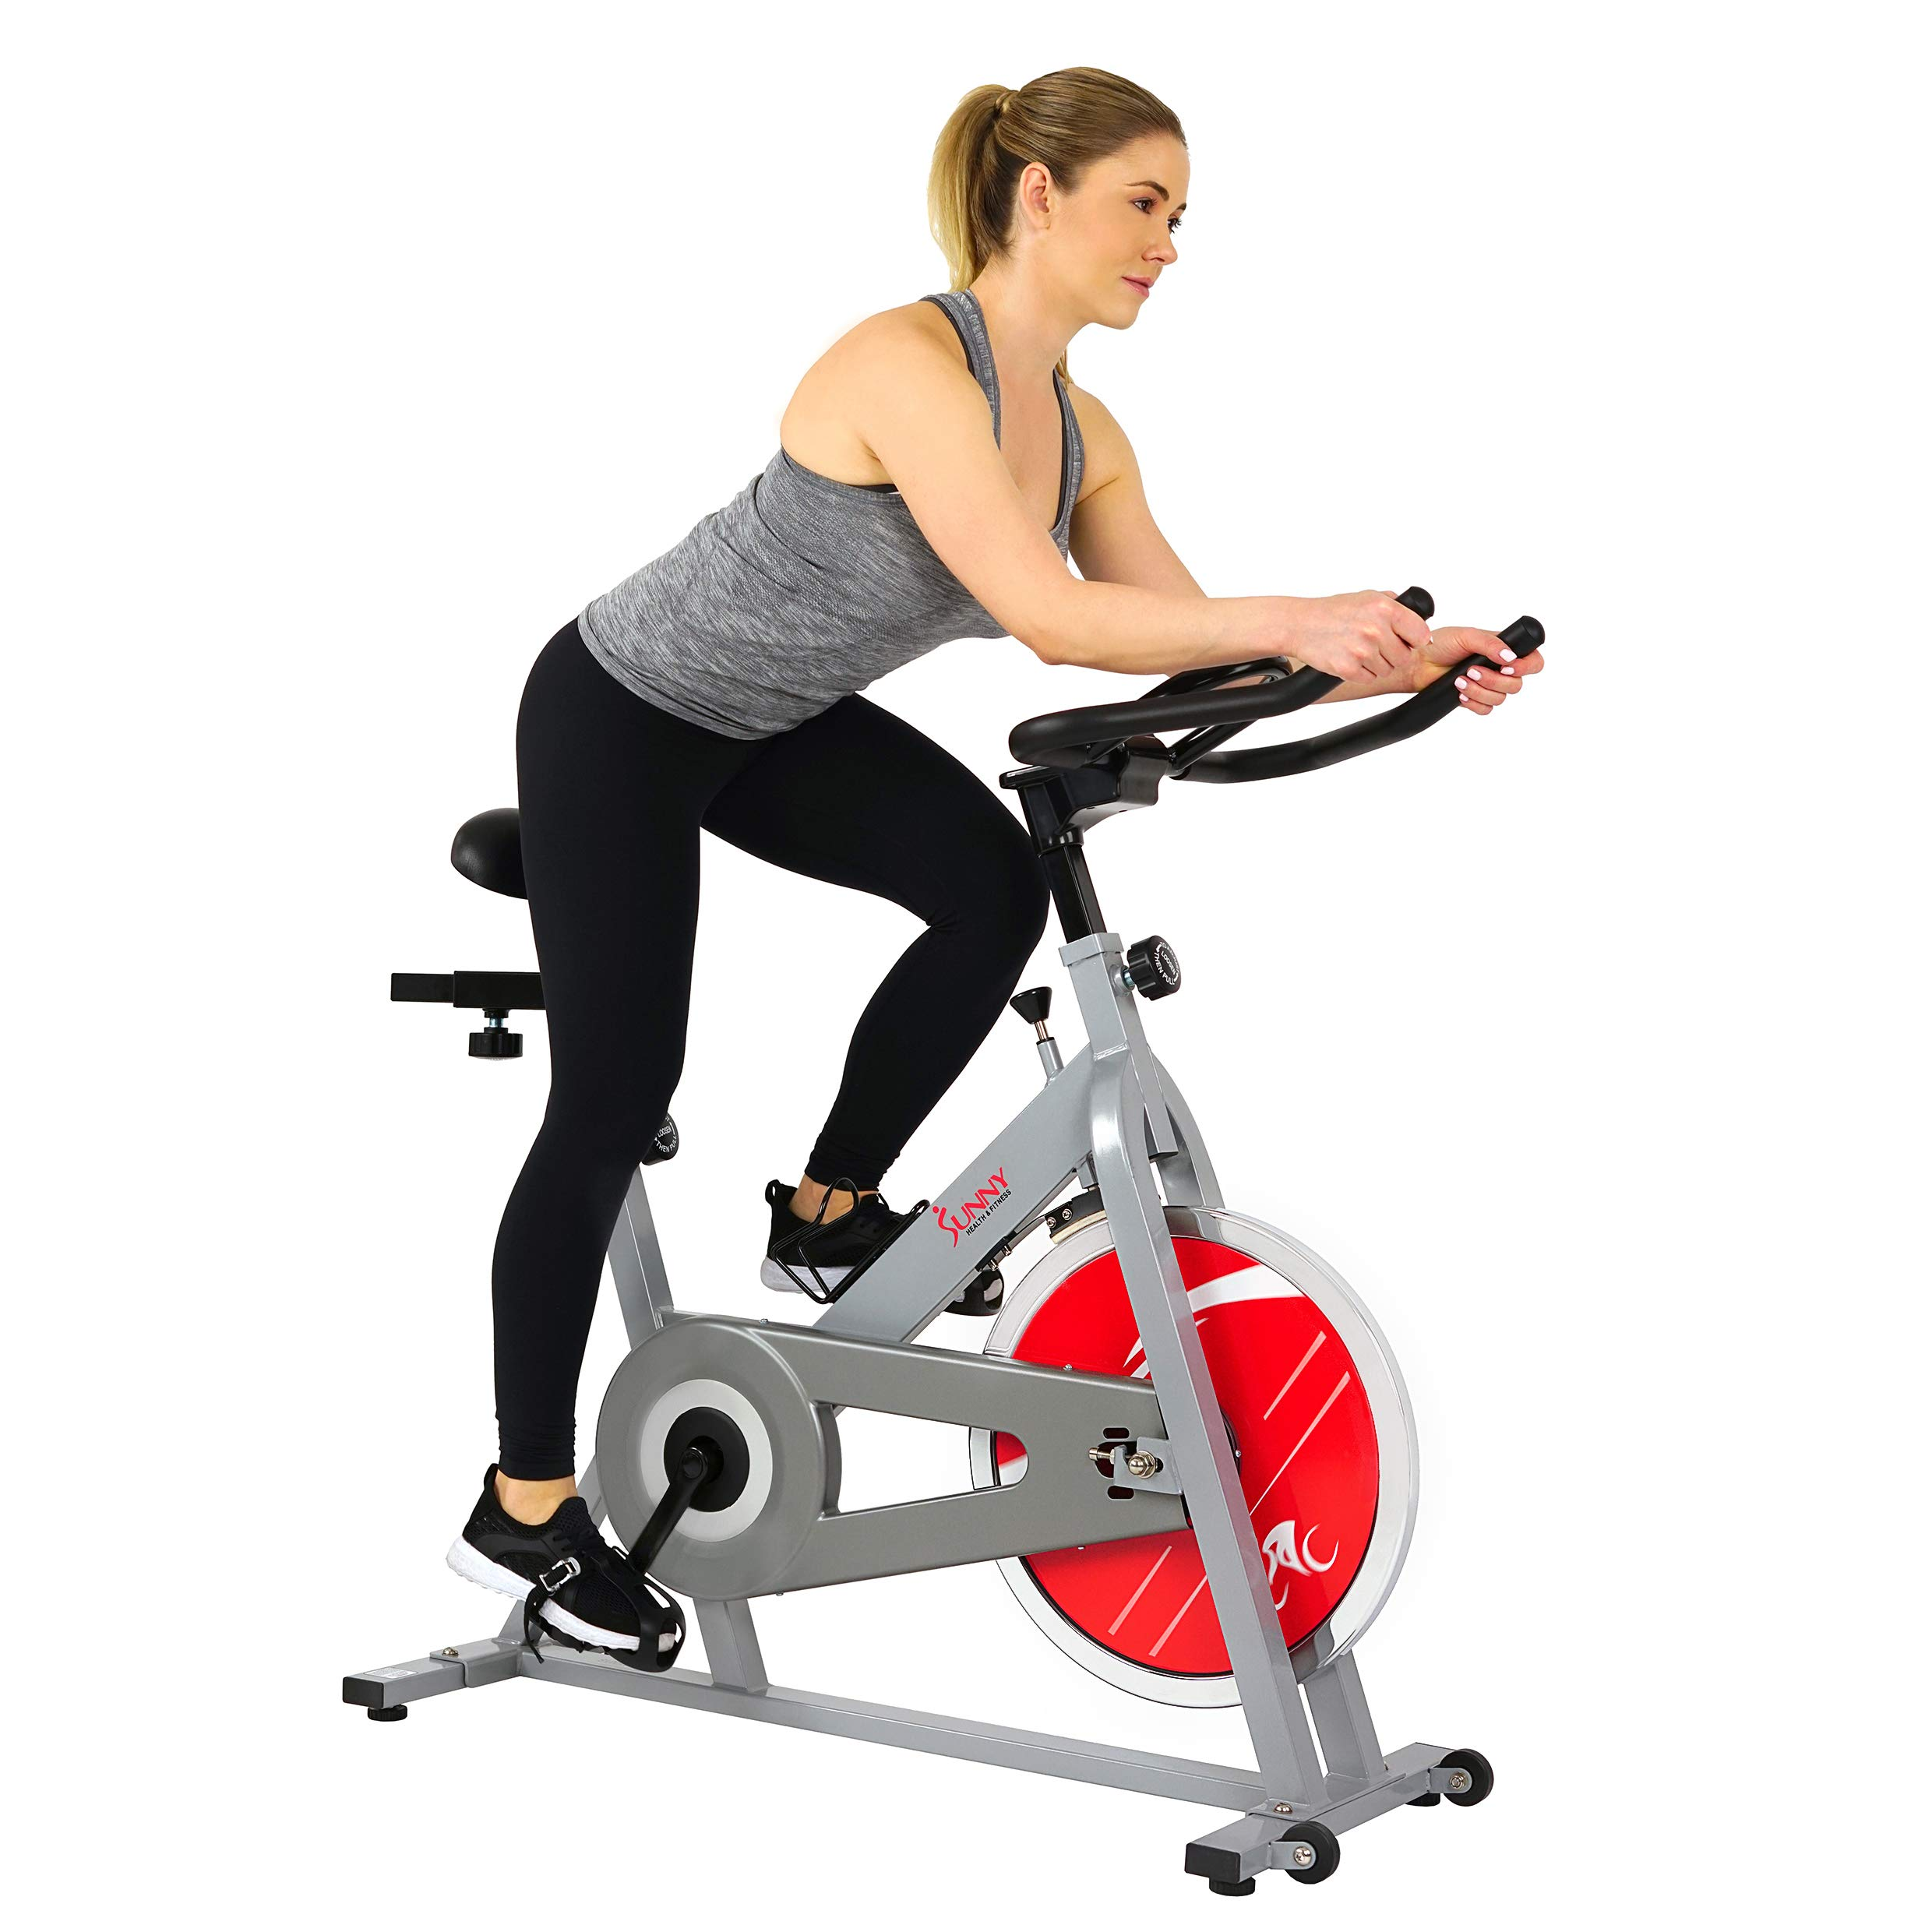 Sunny Health & Fitness SF-B1001S Indoor Cycling Bike, Silver by Sunny Health & Fitness (Image #1)